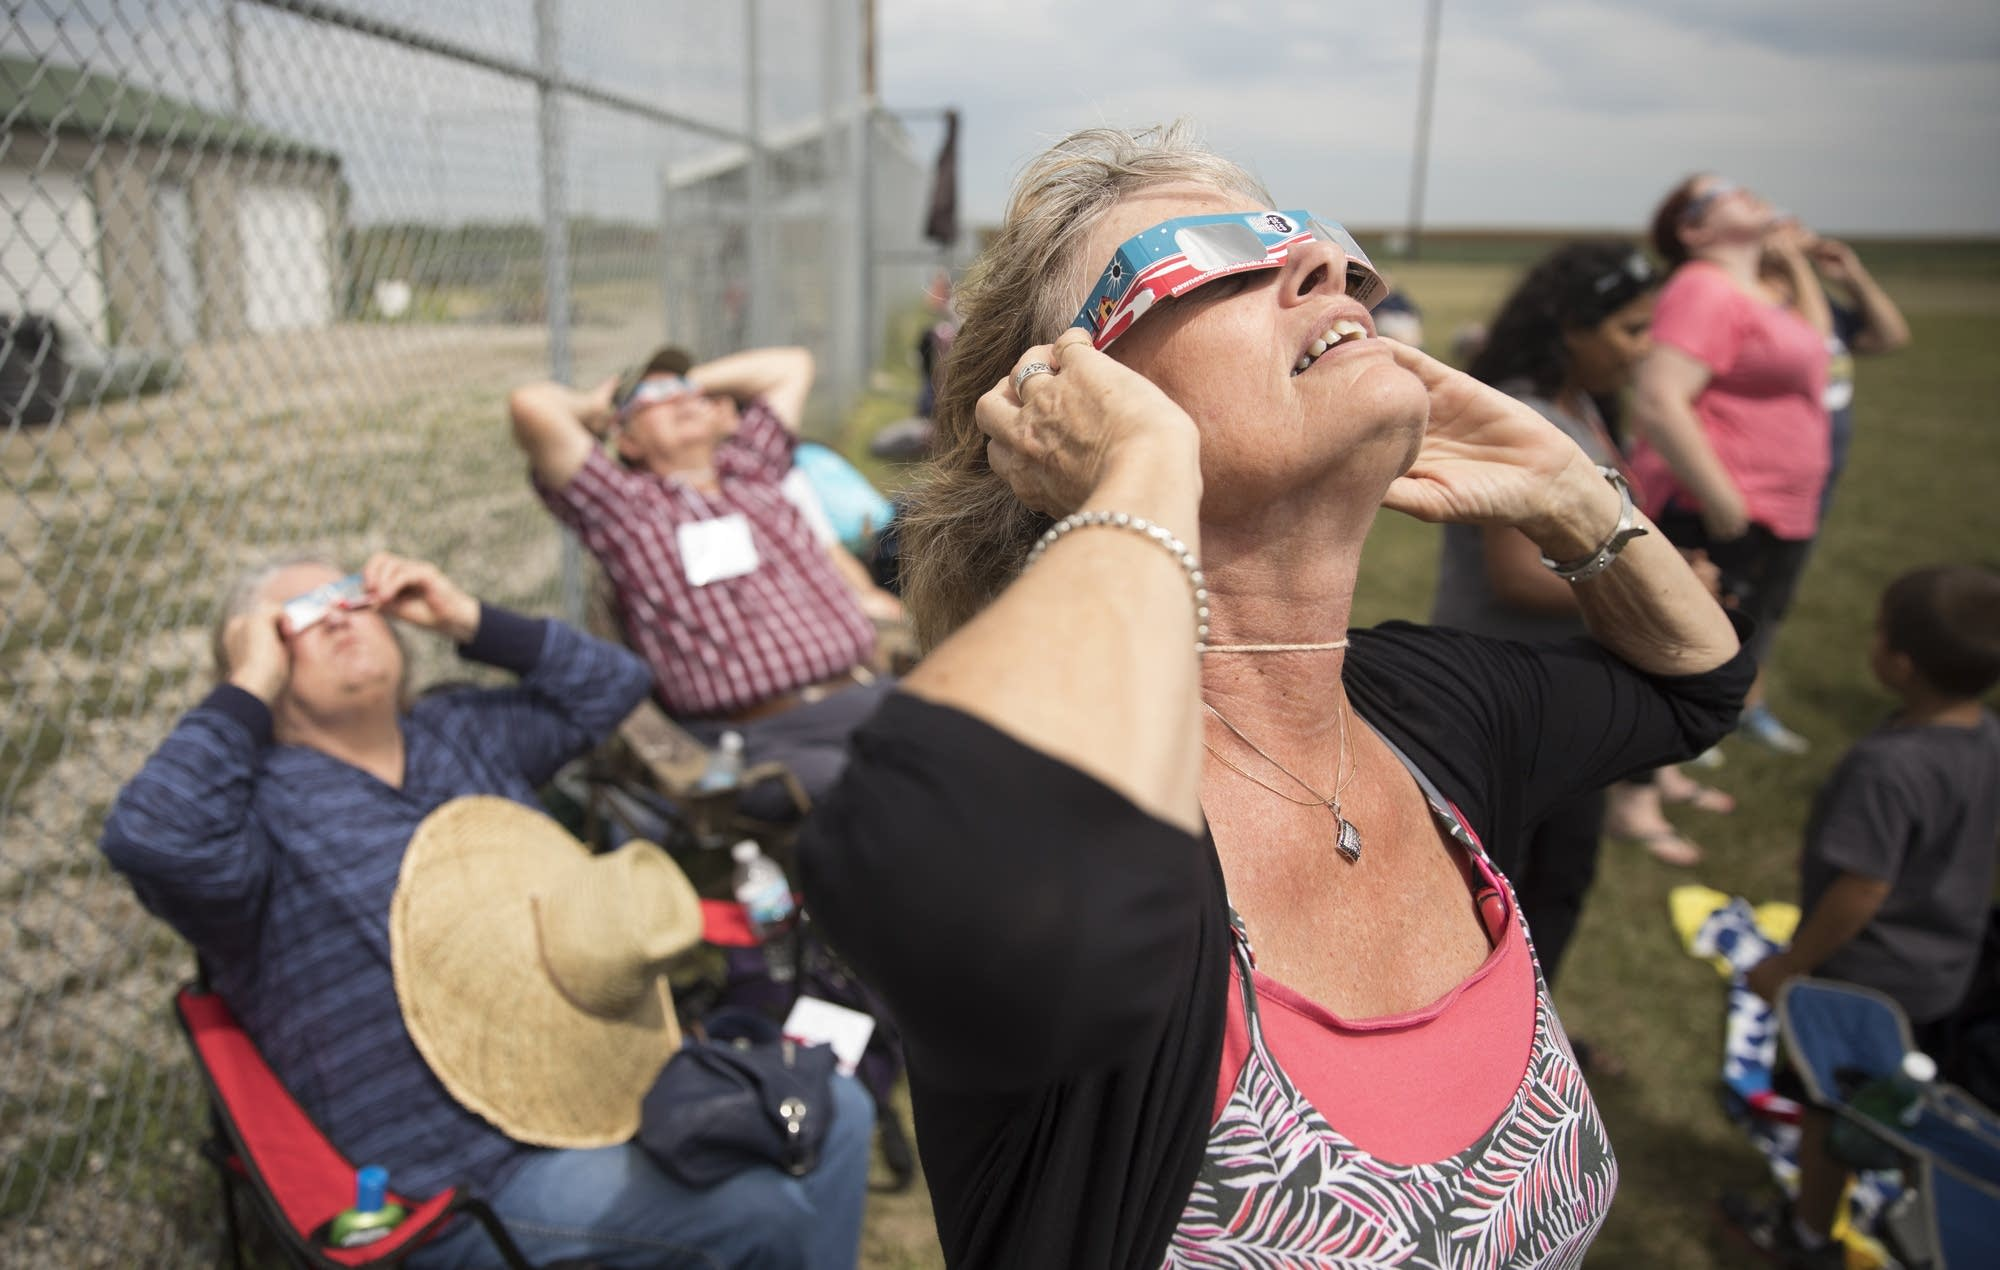 Dixie Jellum, of Mason City, Iowa watches the beginning of the eclipse.